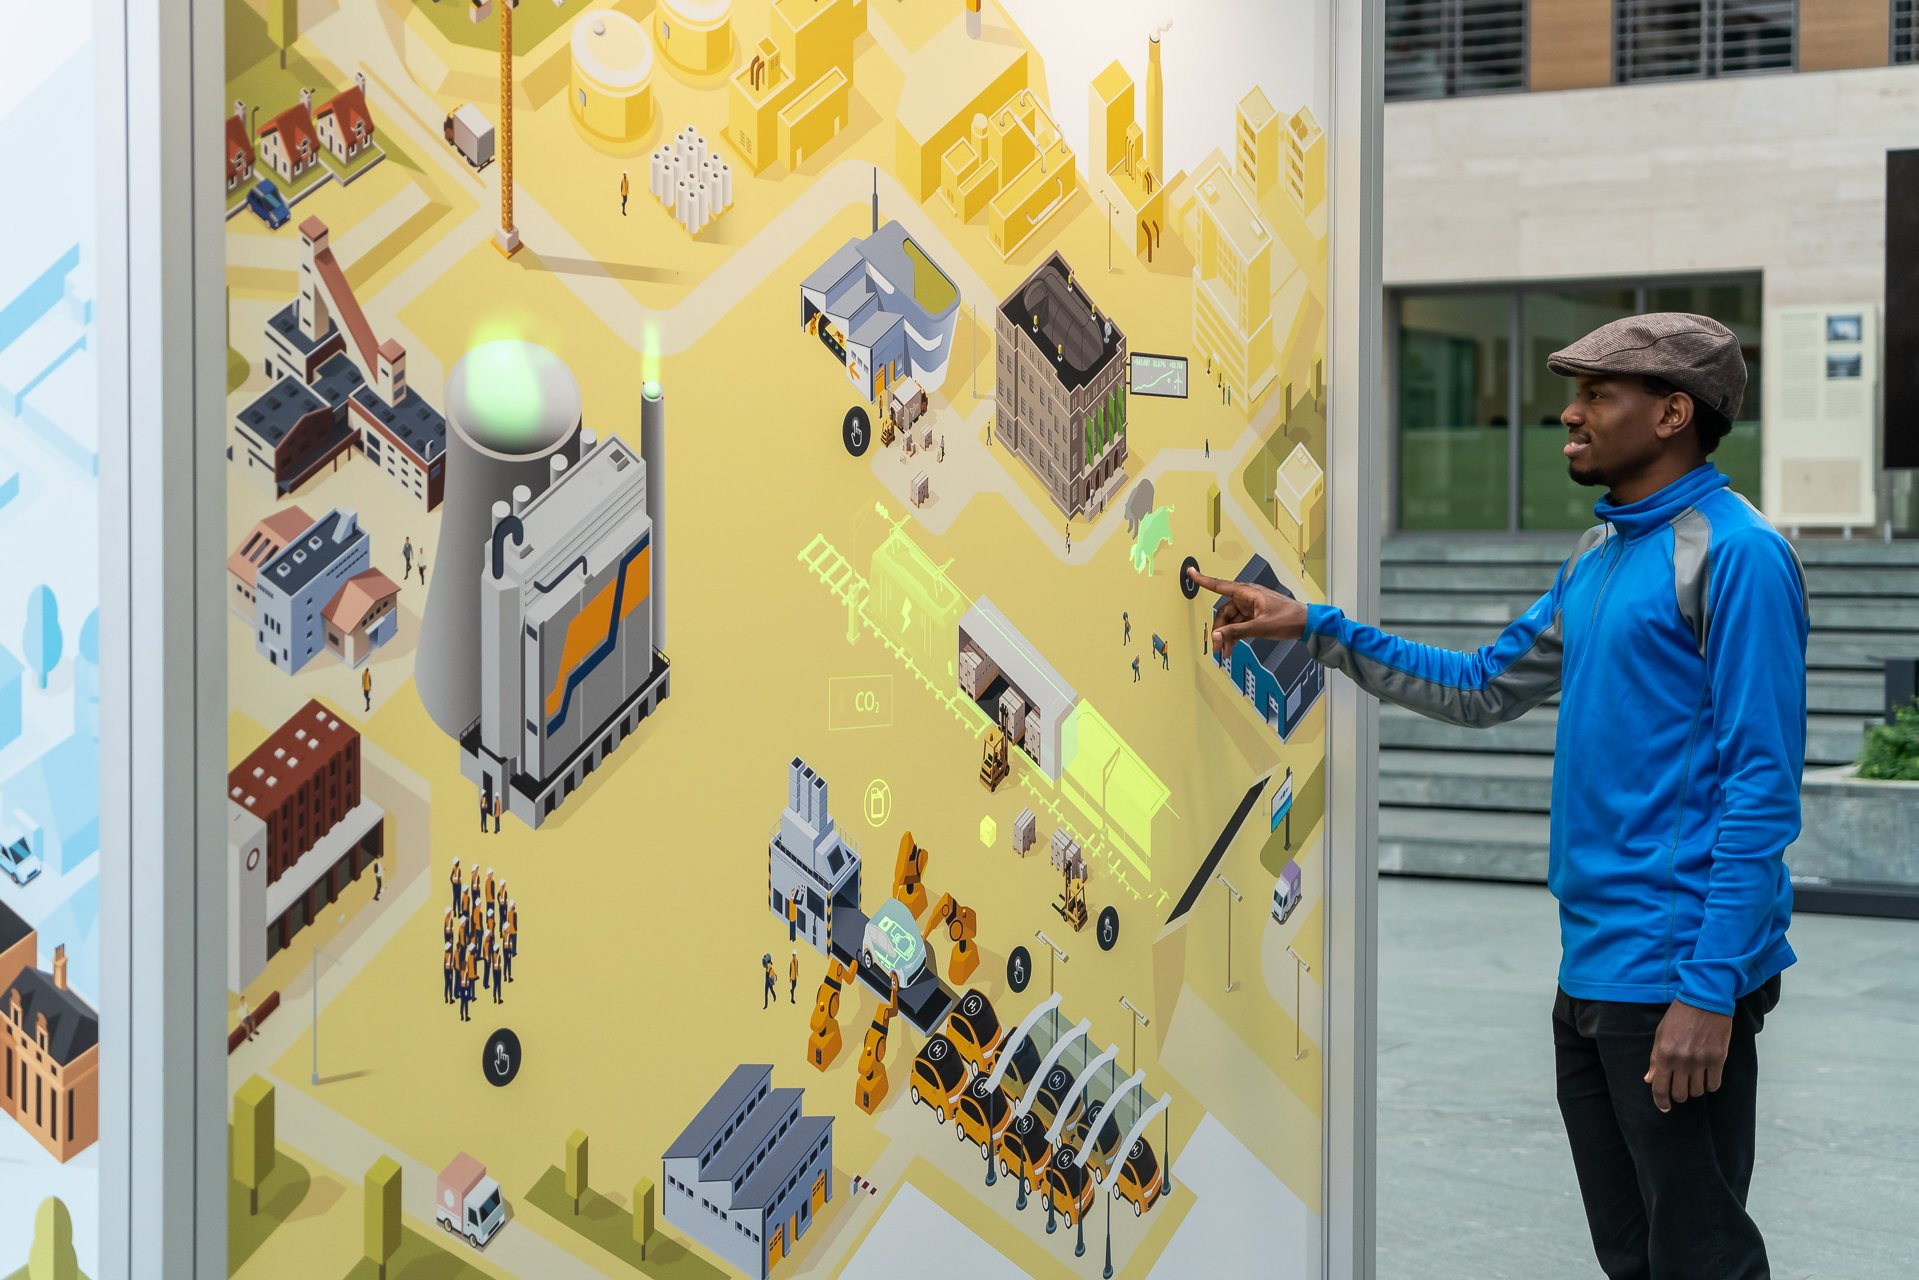 A visitor starts up the animation at the Energy in Transition station and is fascinated by the light-up display of a freight train powered by electricity and an electric car on a production line.